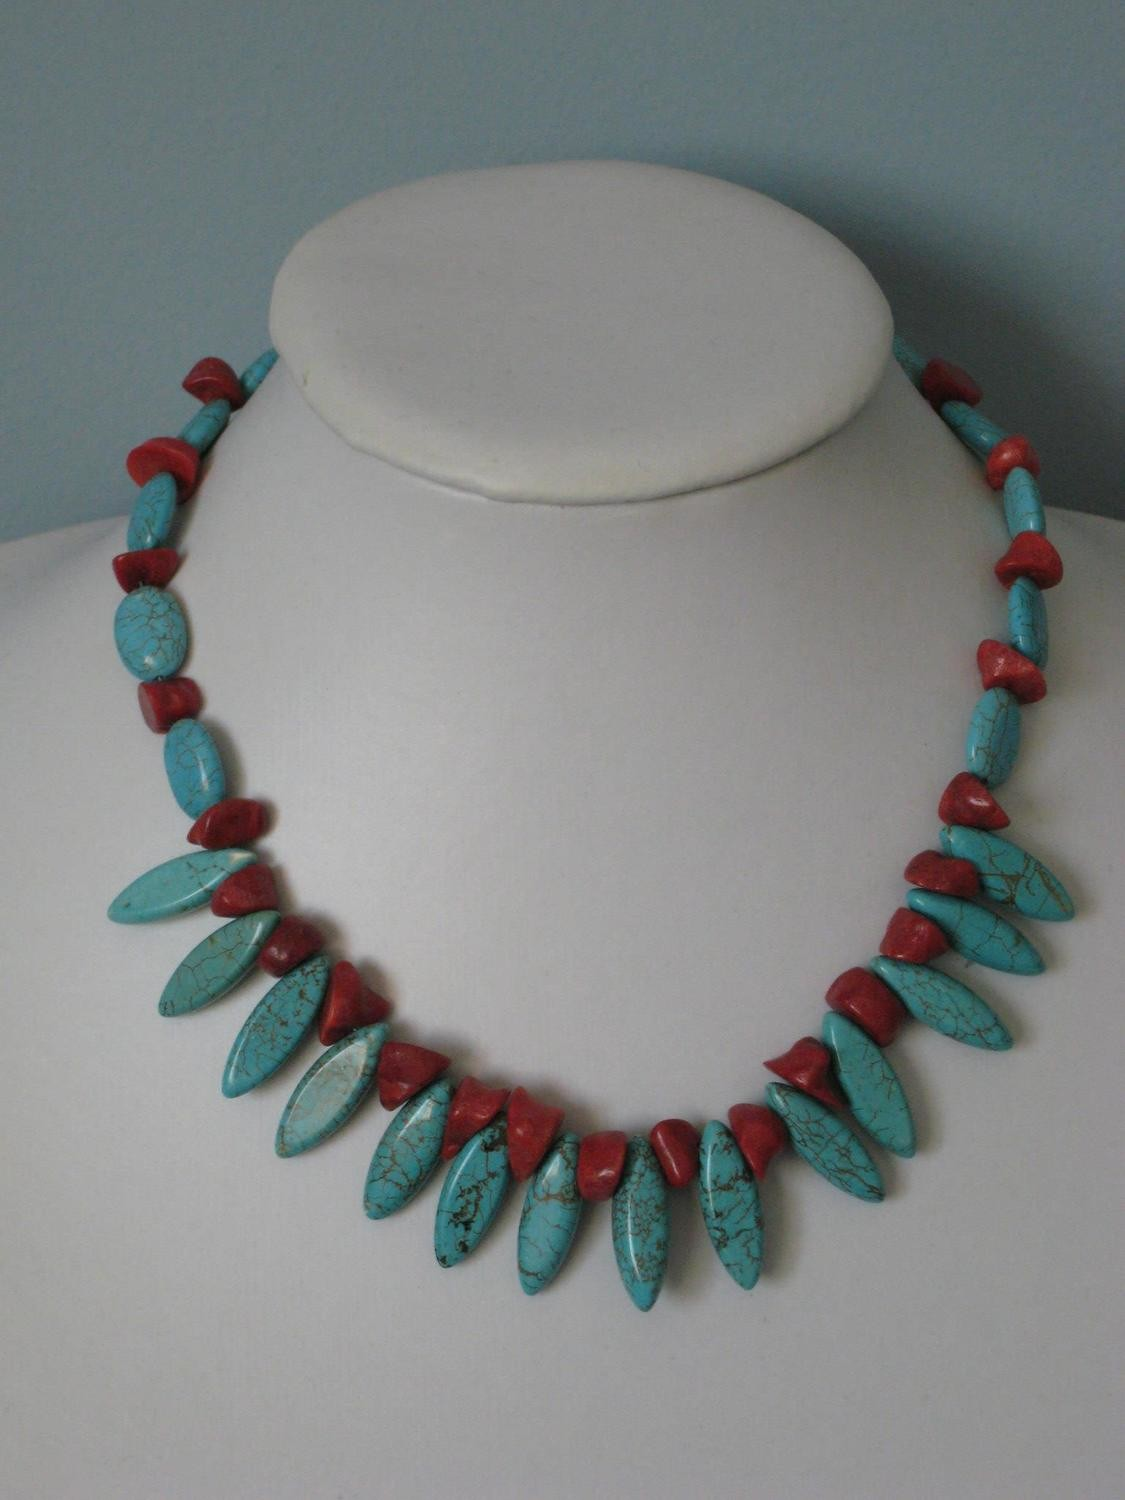 Jungle Fever Necklace/ Collier d'Air de Jungle